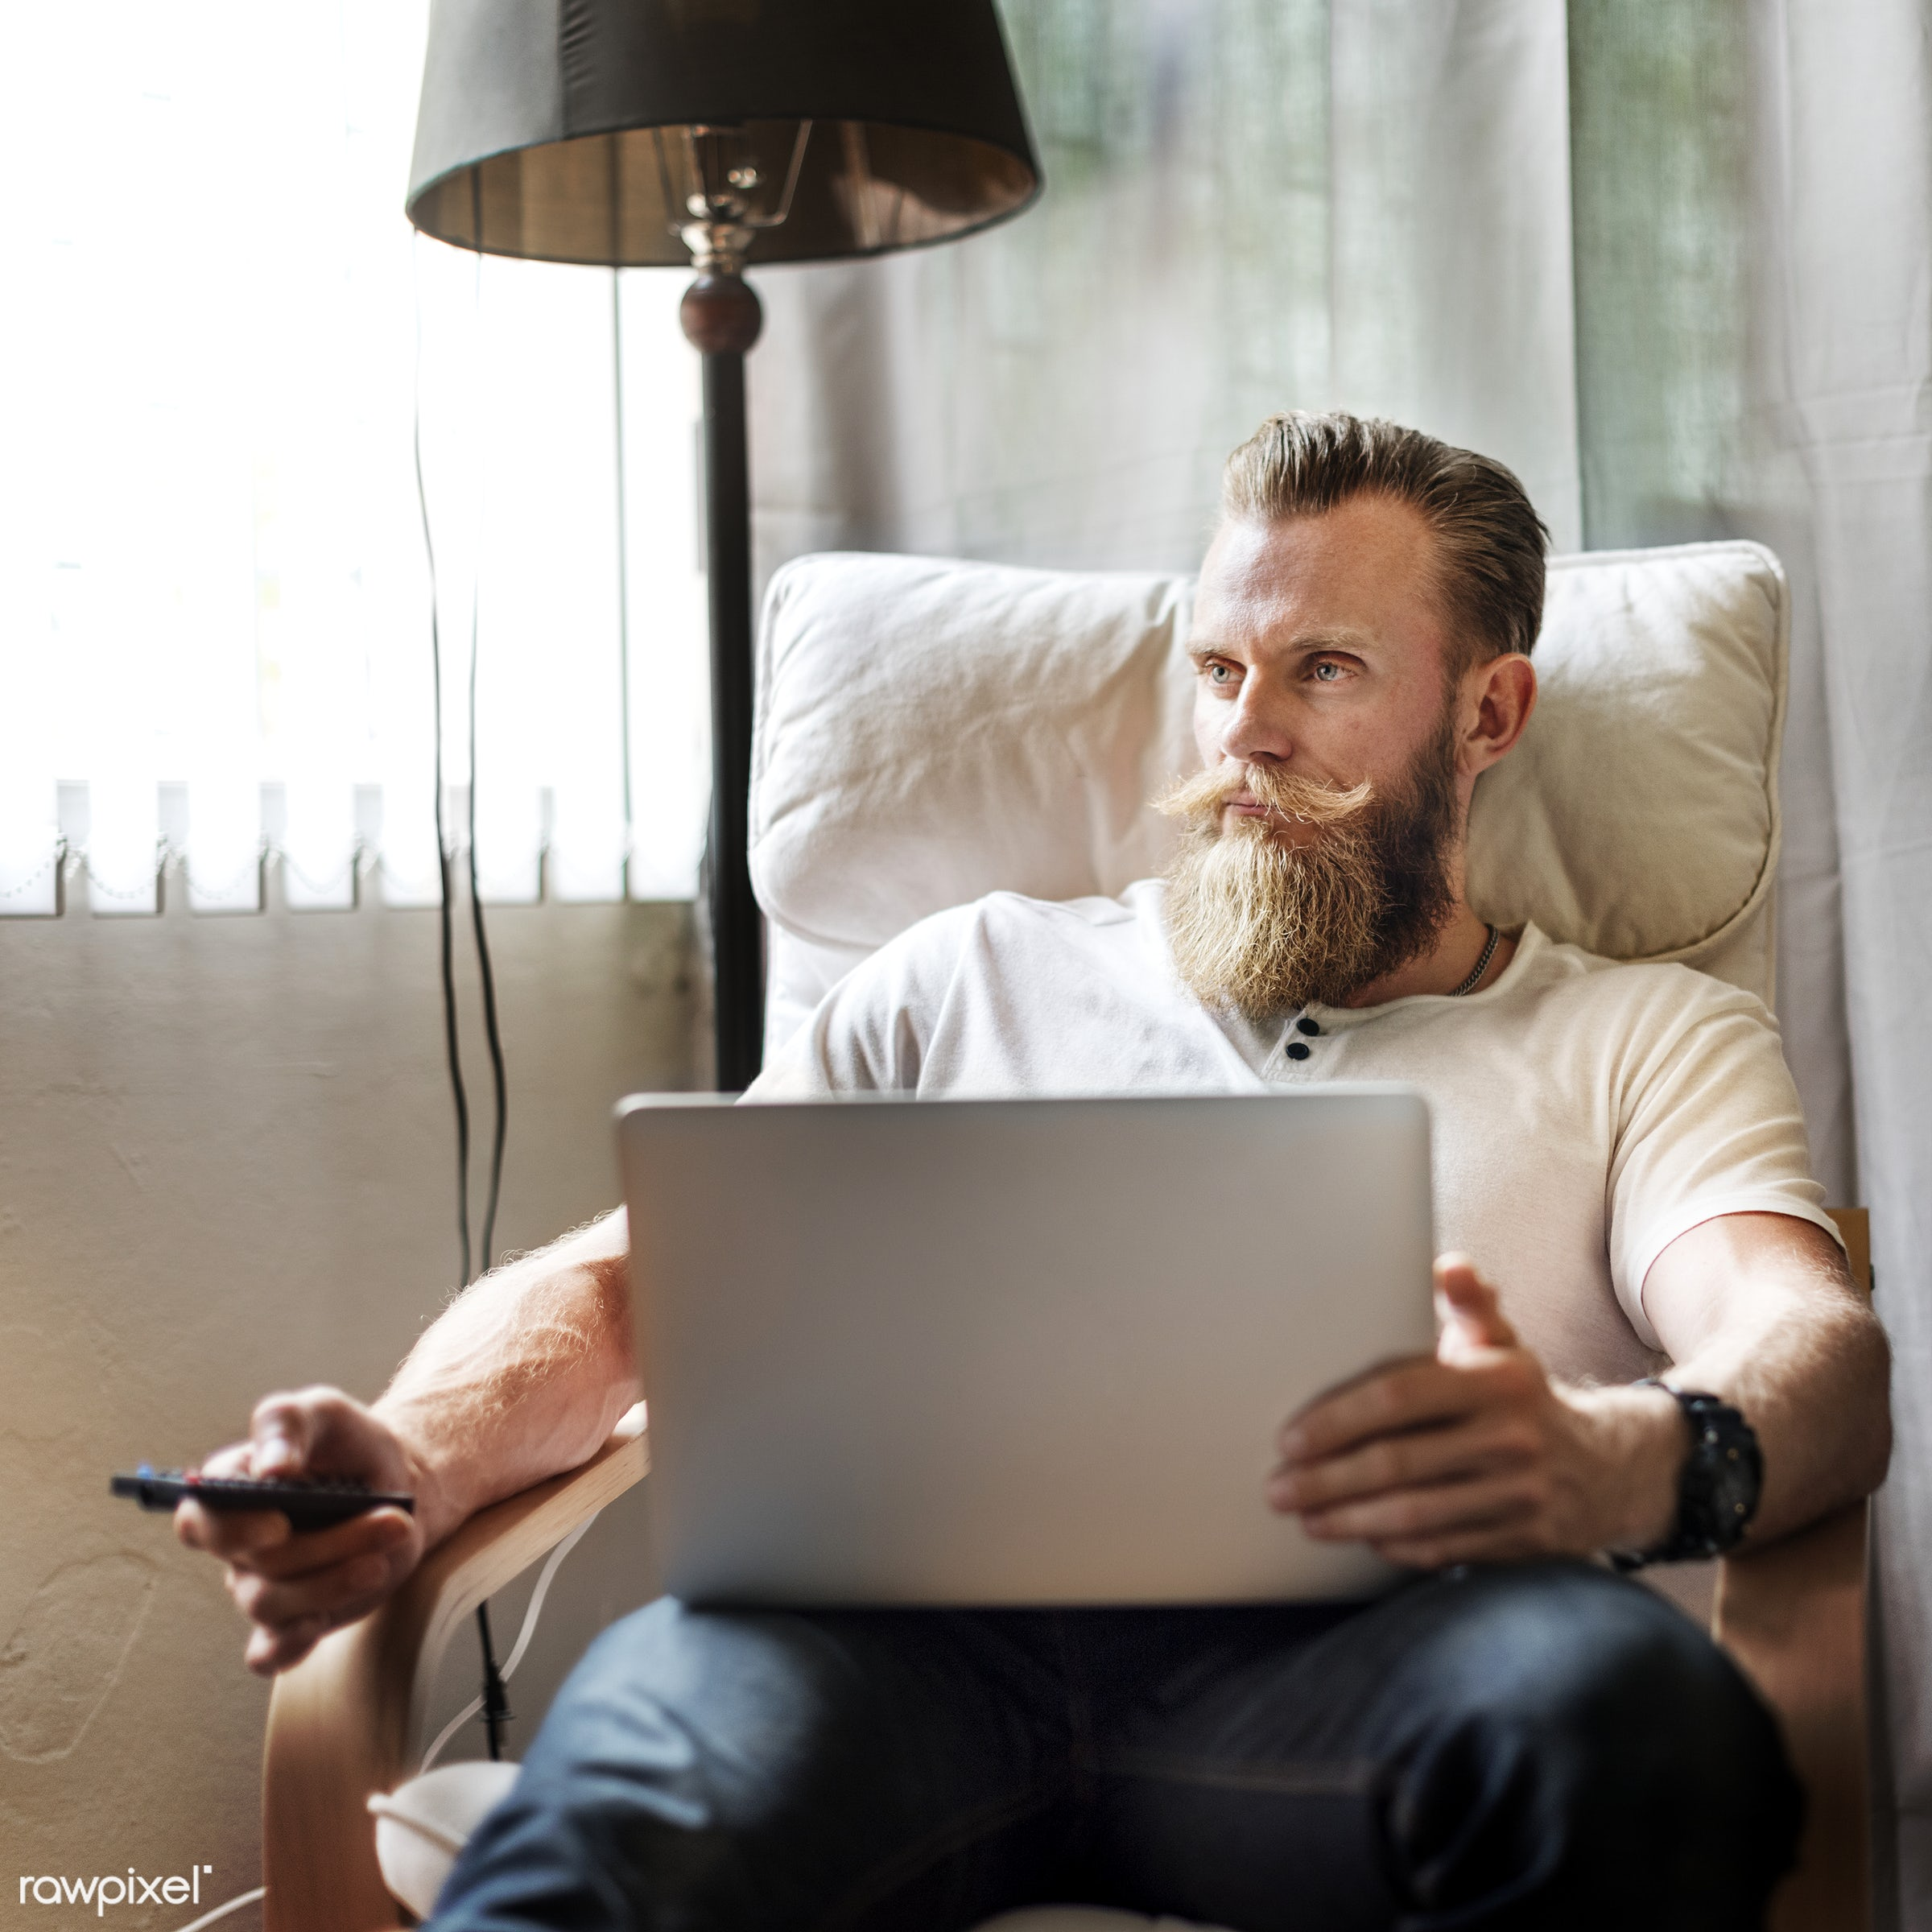 beard, tv, adult, armchair, at home, browsing, business, calm, chair, comfortable, communication, concentrated, connection,...